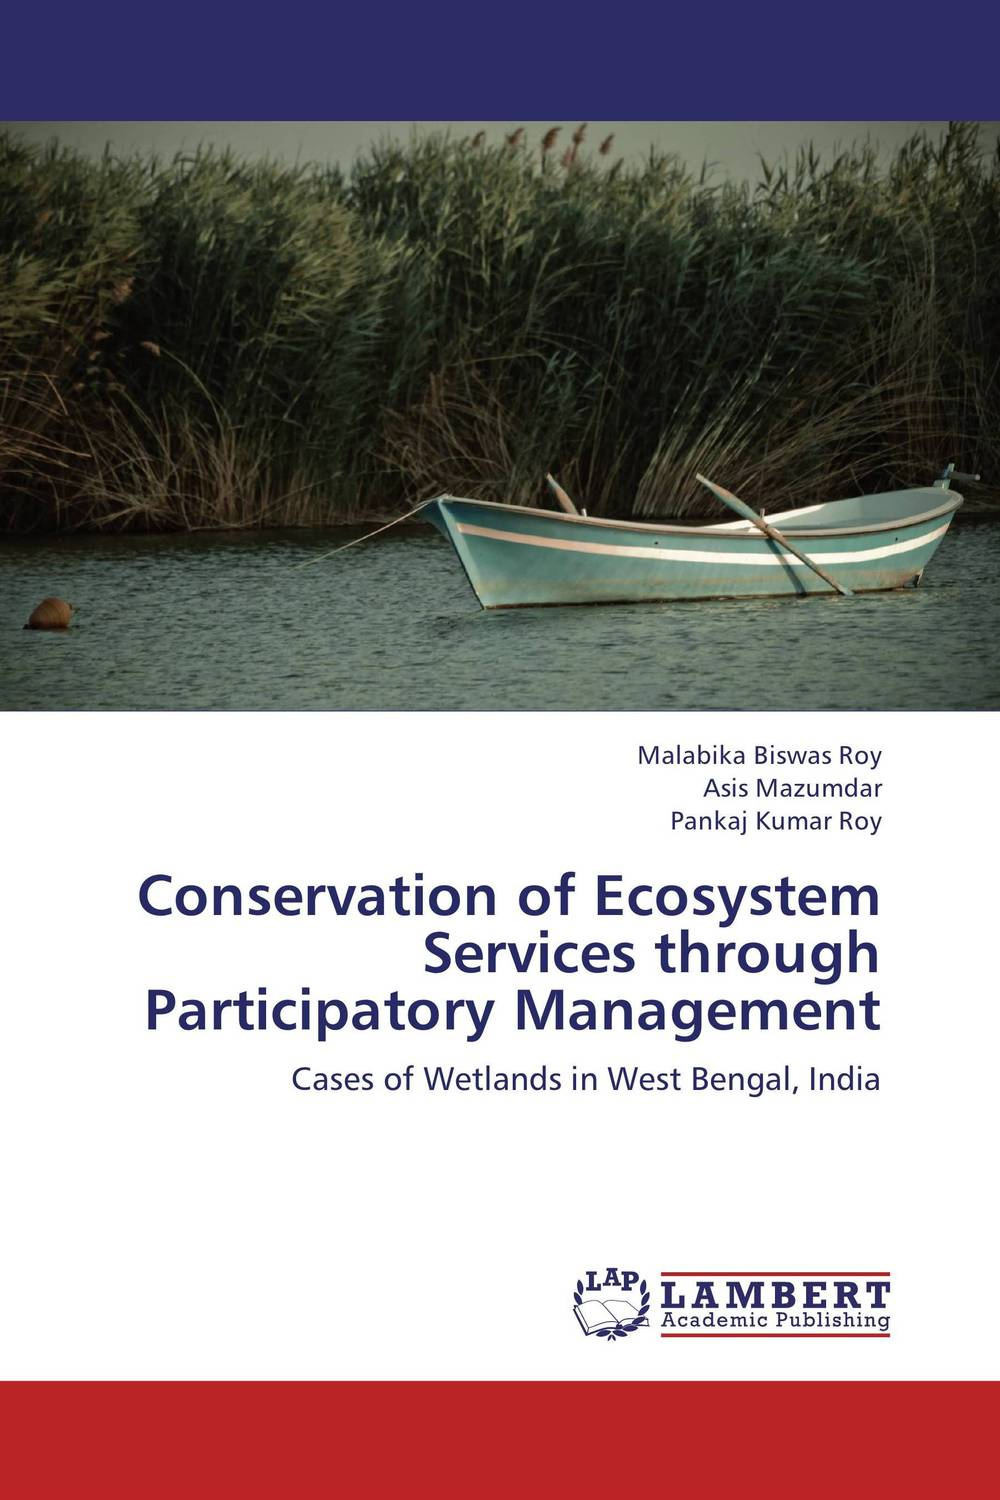 цена на Conservation of Ecosystem Services through Participatory Management